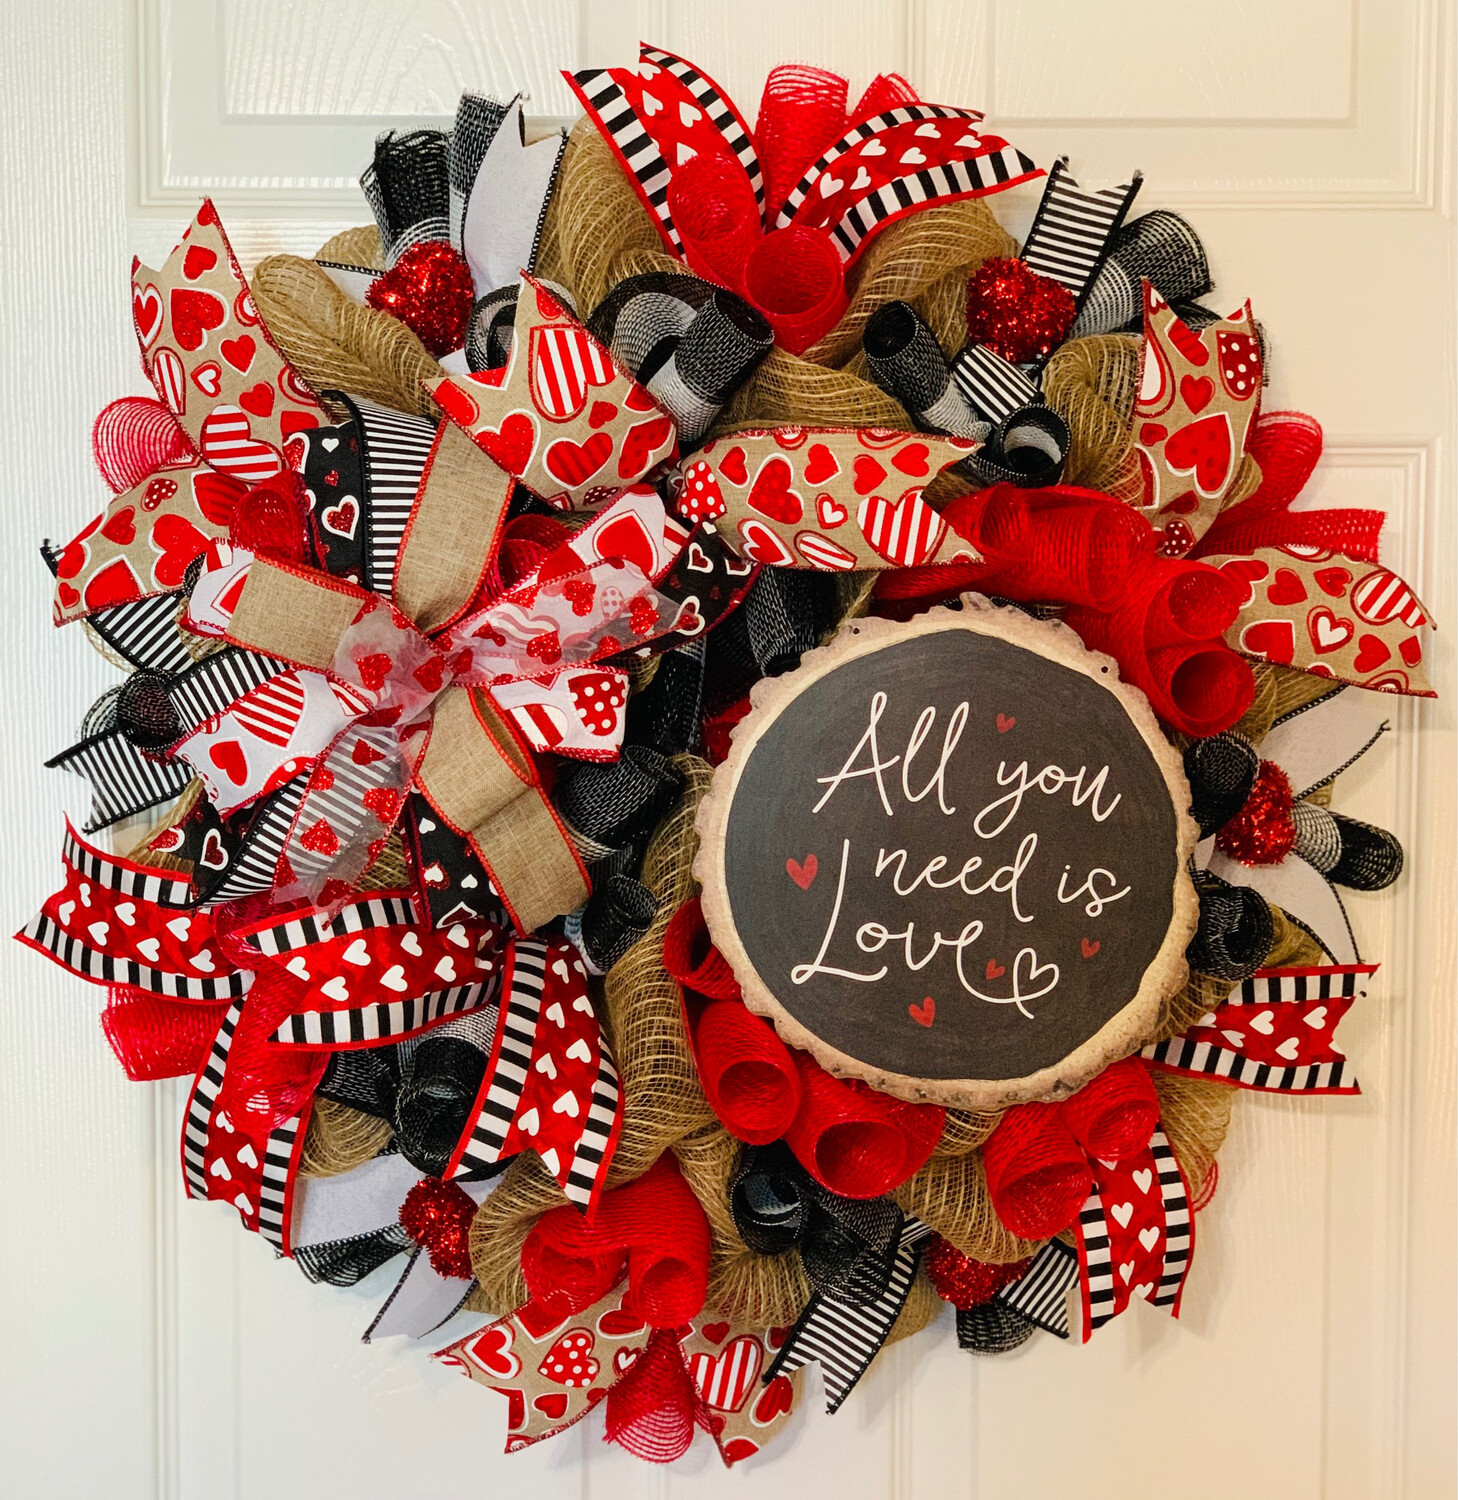 All You Need Is Love Valentine's Day Wreath